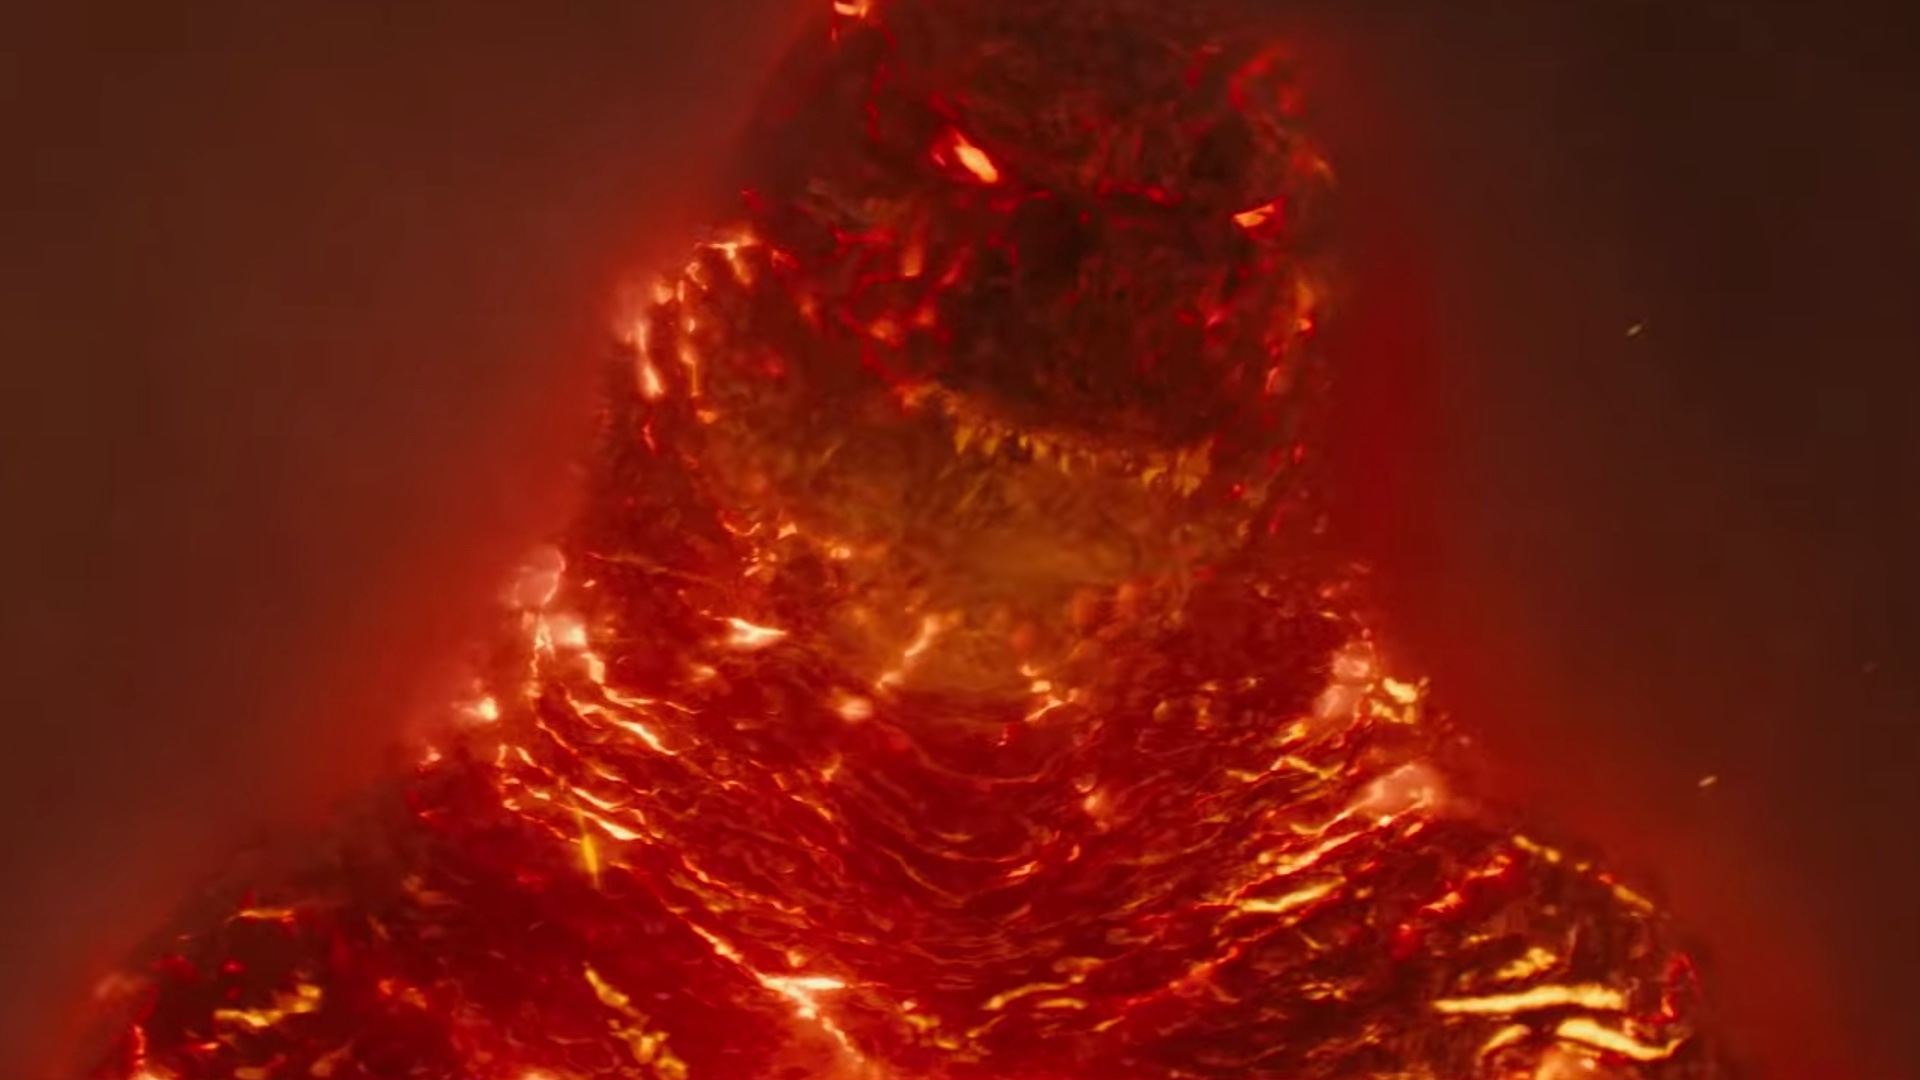 new-trailer-for-godzilla-king-of-the-monsters-shows-all-kinds-of-awesome-monster-fighting-social.jpg